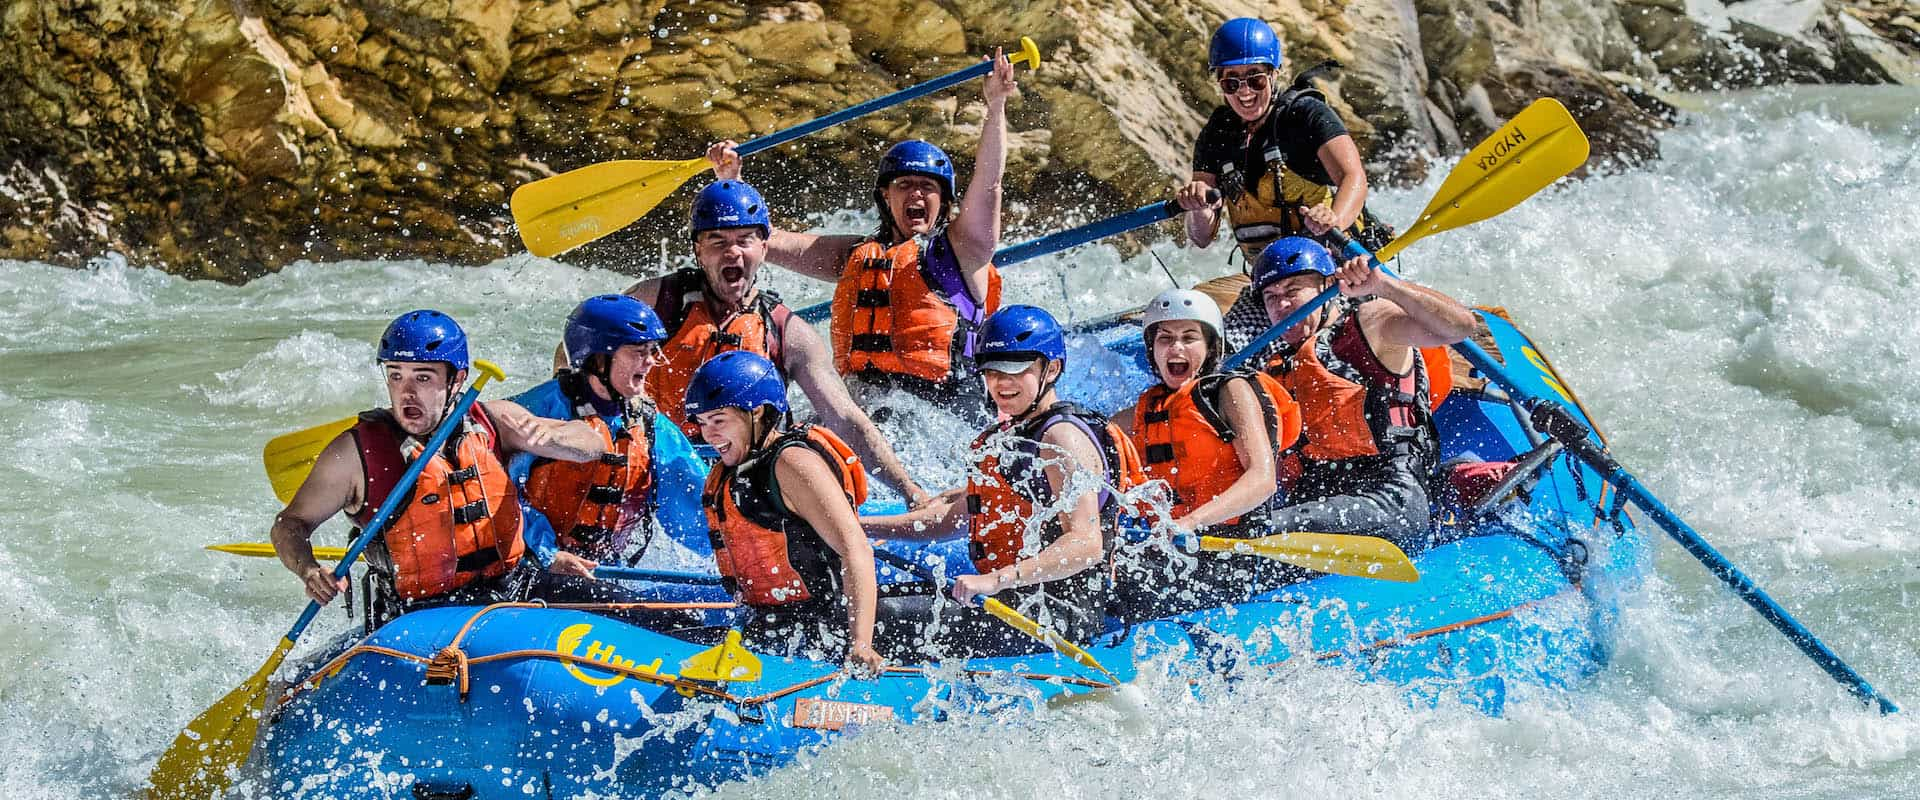 Experience-whitewater-thrills-on-the-Kicking-Horse-Classic-Whitewater-Rafting-Tour